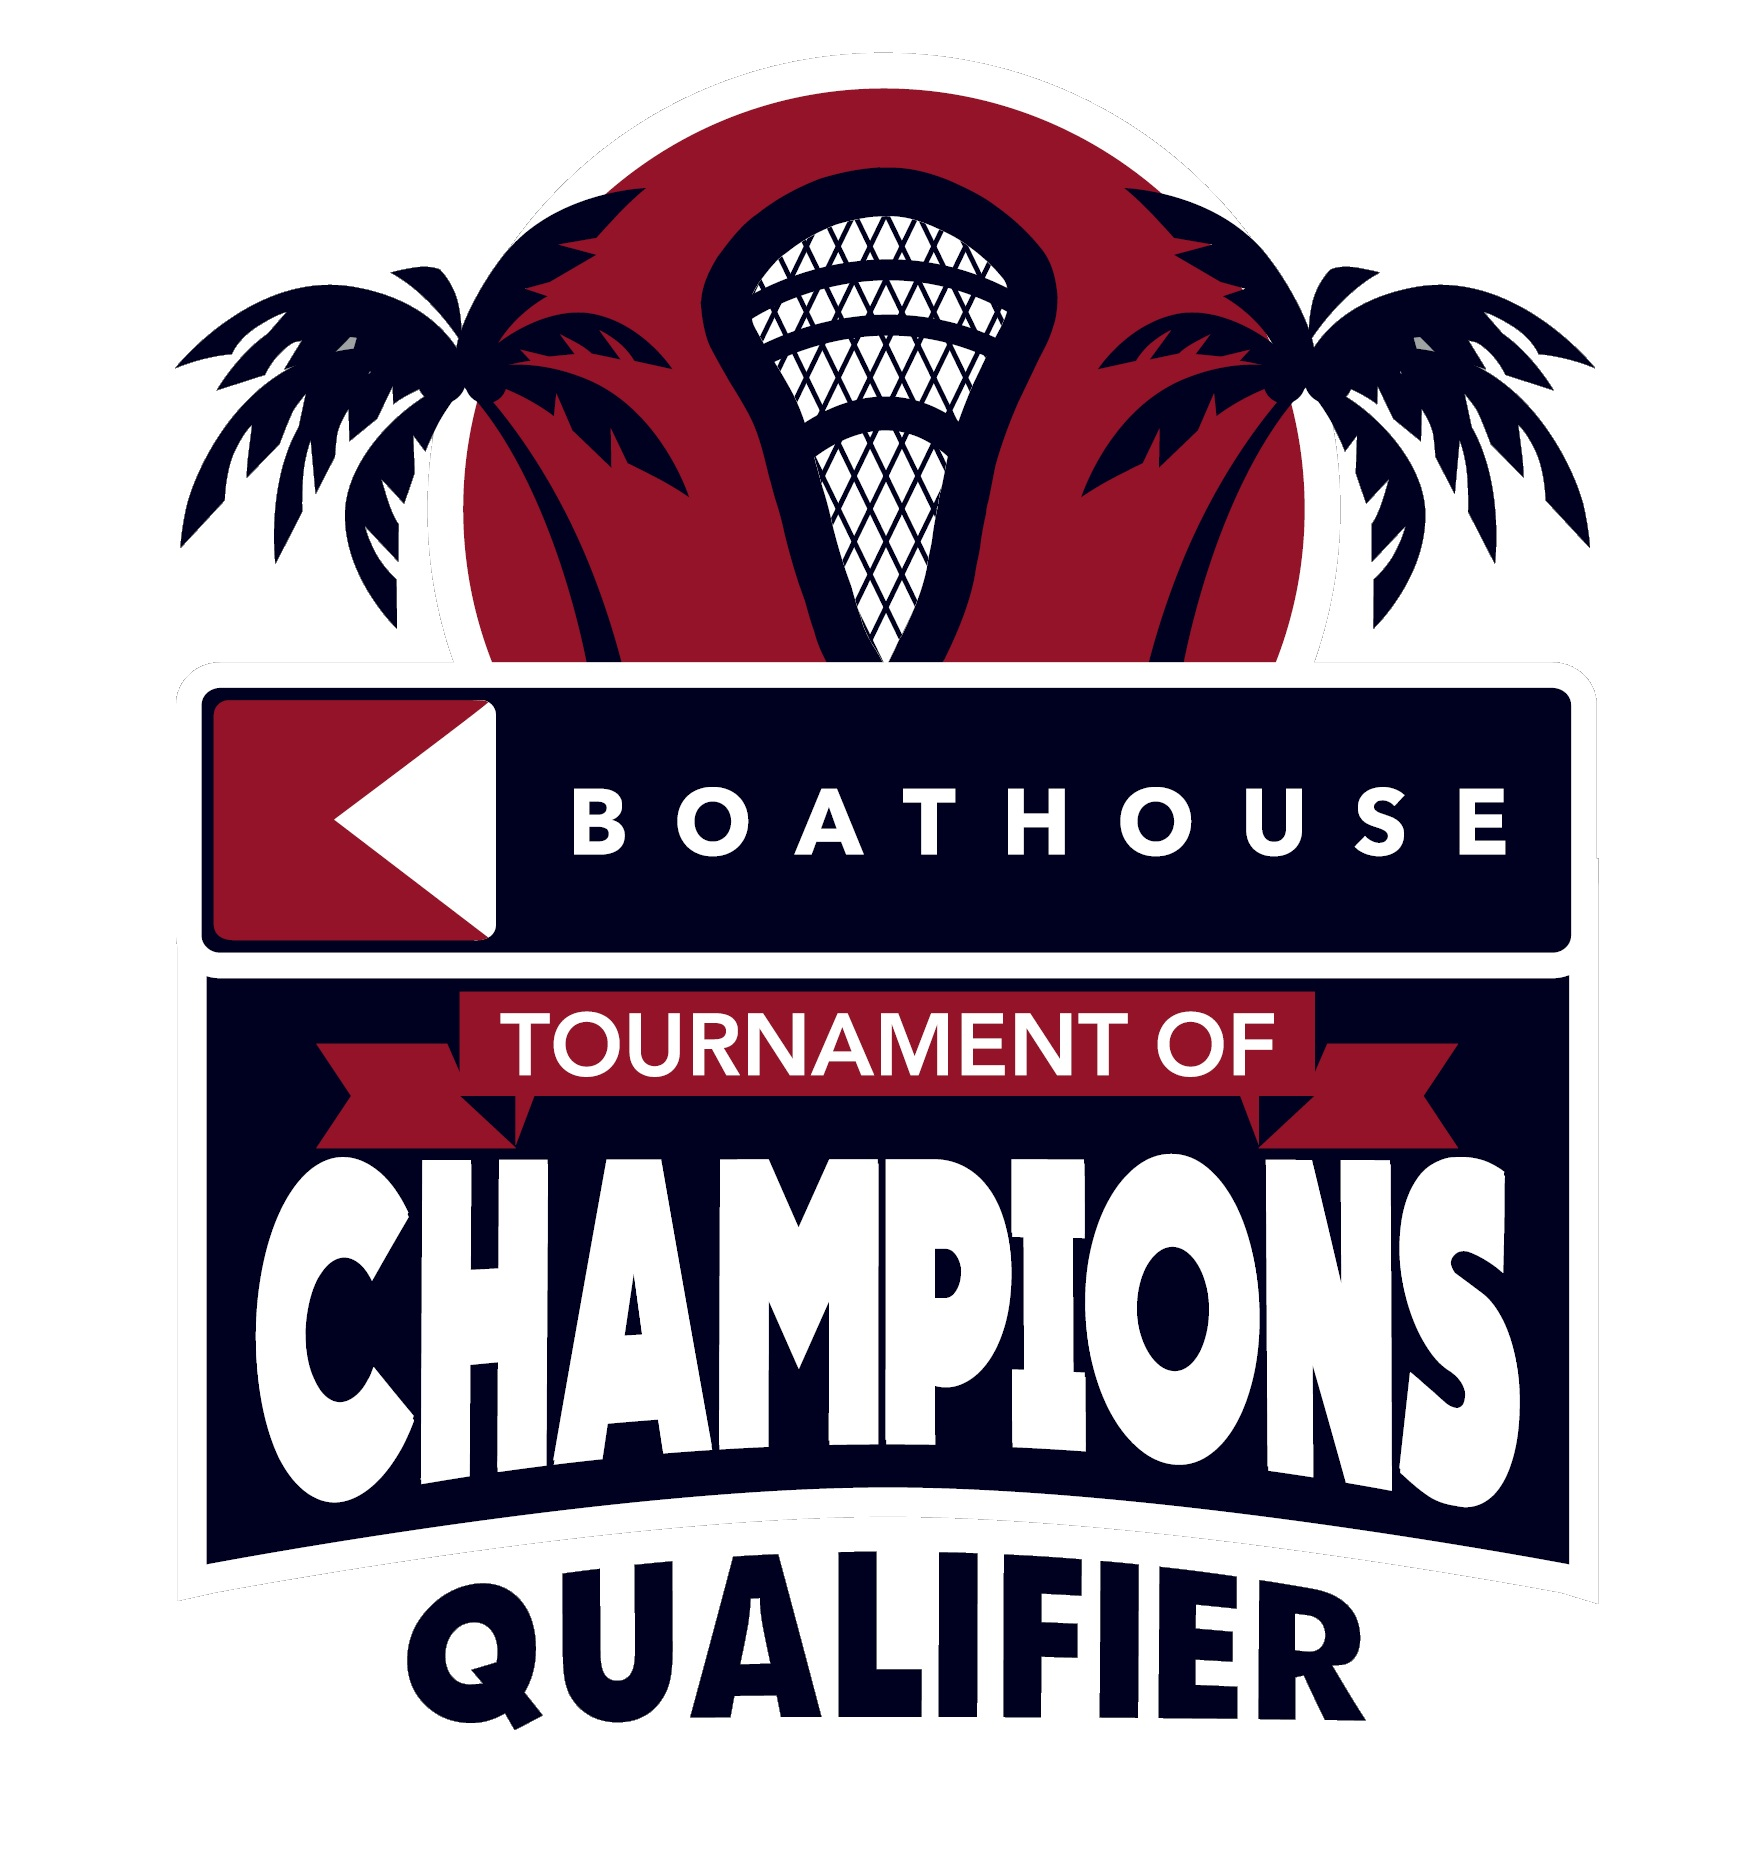 VA Beach Turkey Shoot Lacrosse Boathouse Tournament of Champions